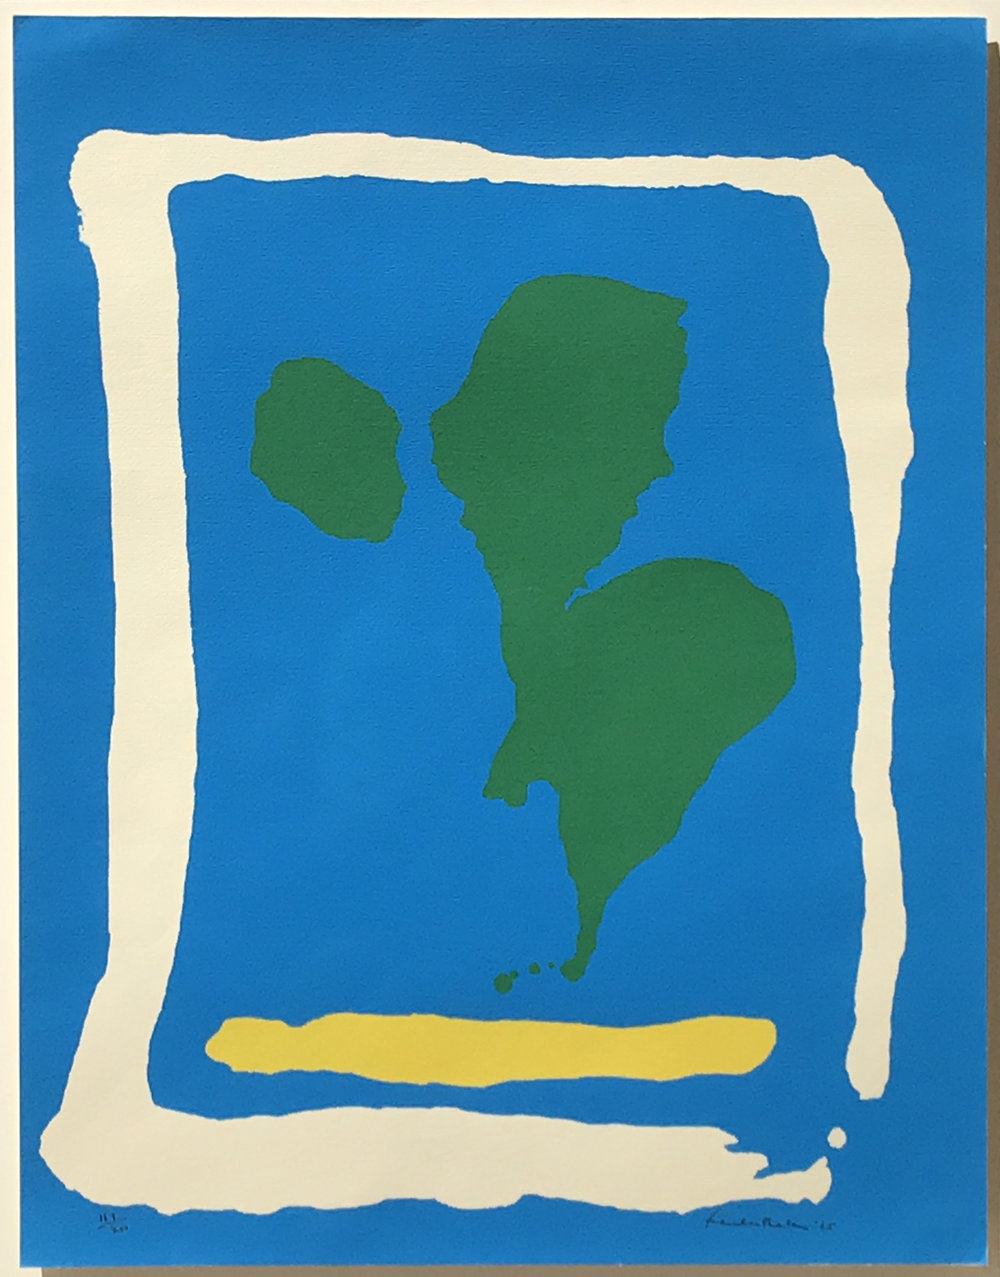 10.	Helen Frankenthaler. Air Frame, 1965. Screenprint, ed. 157/200, 22 x 17 in.